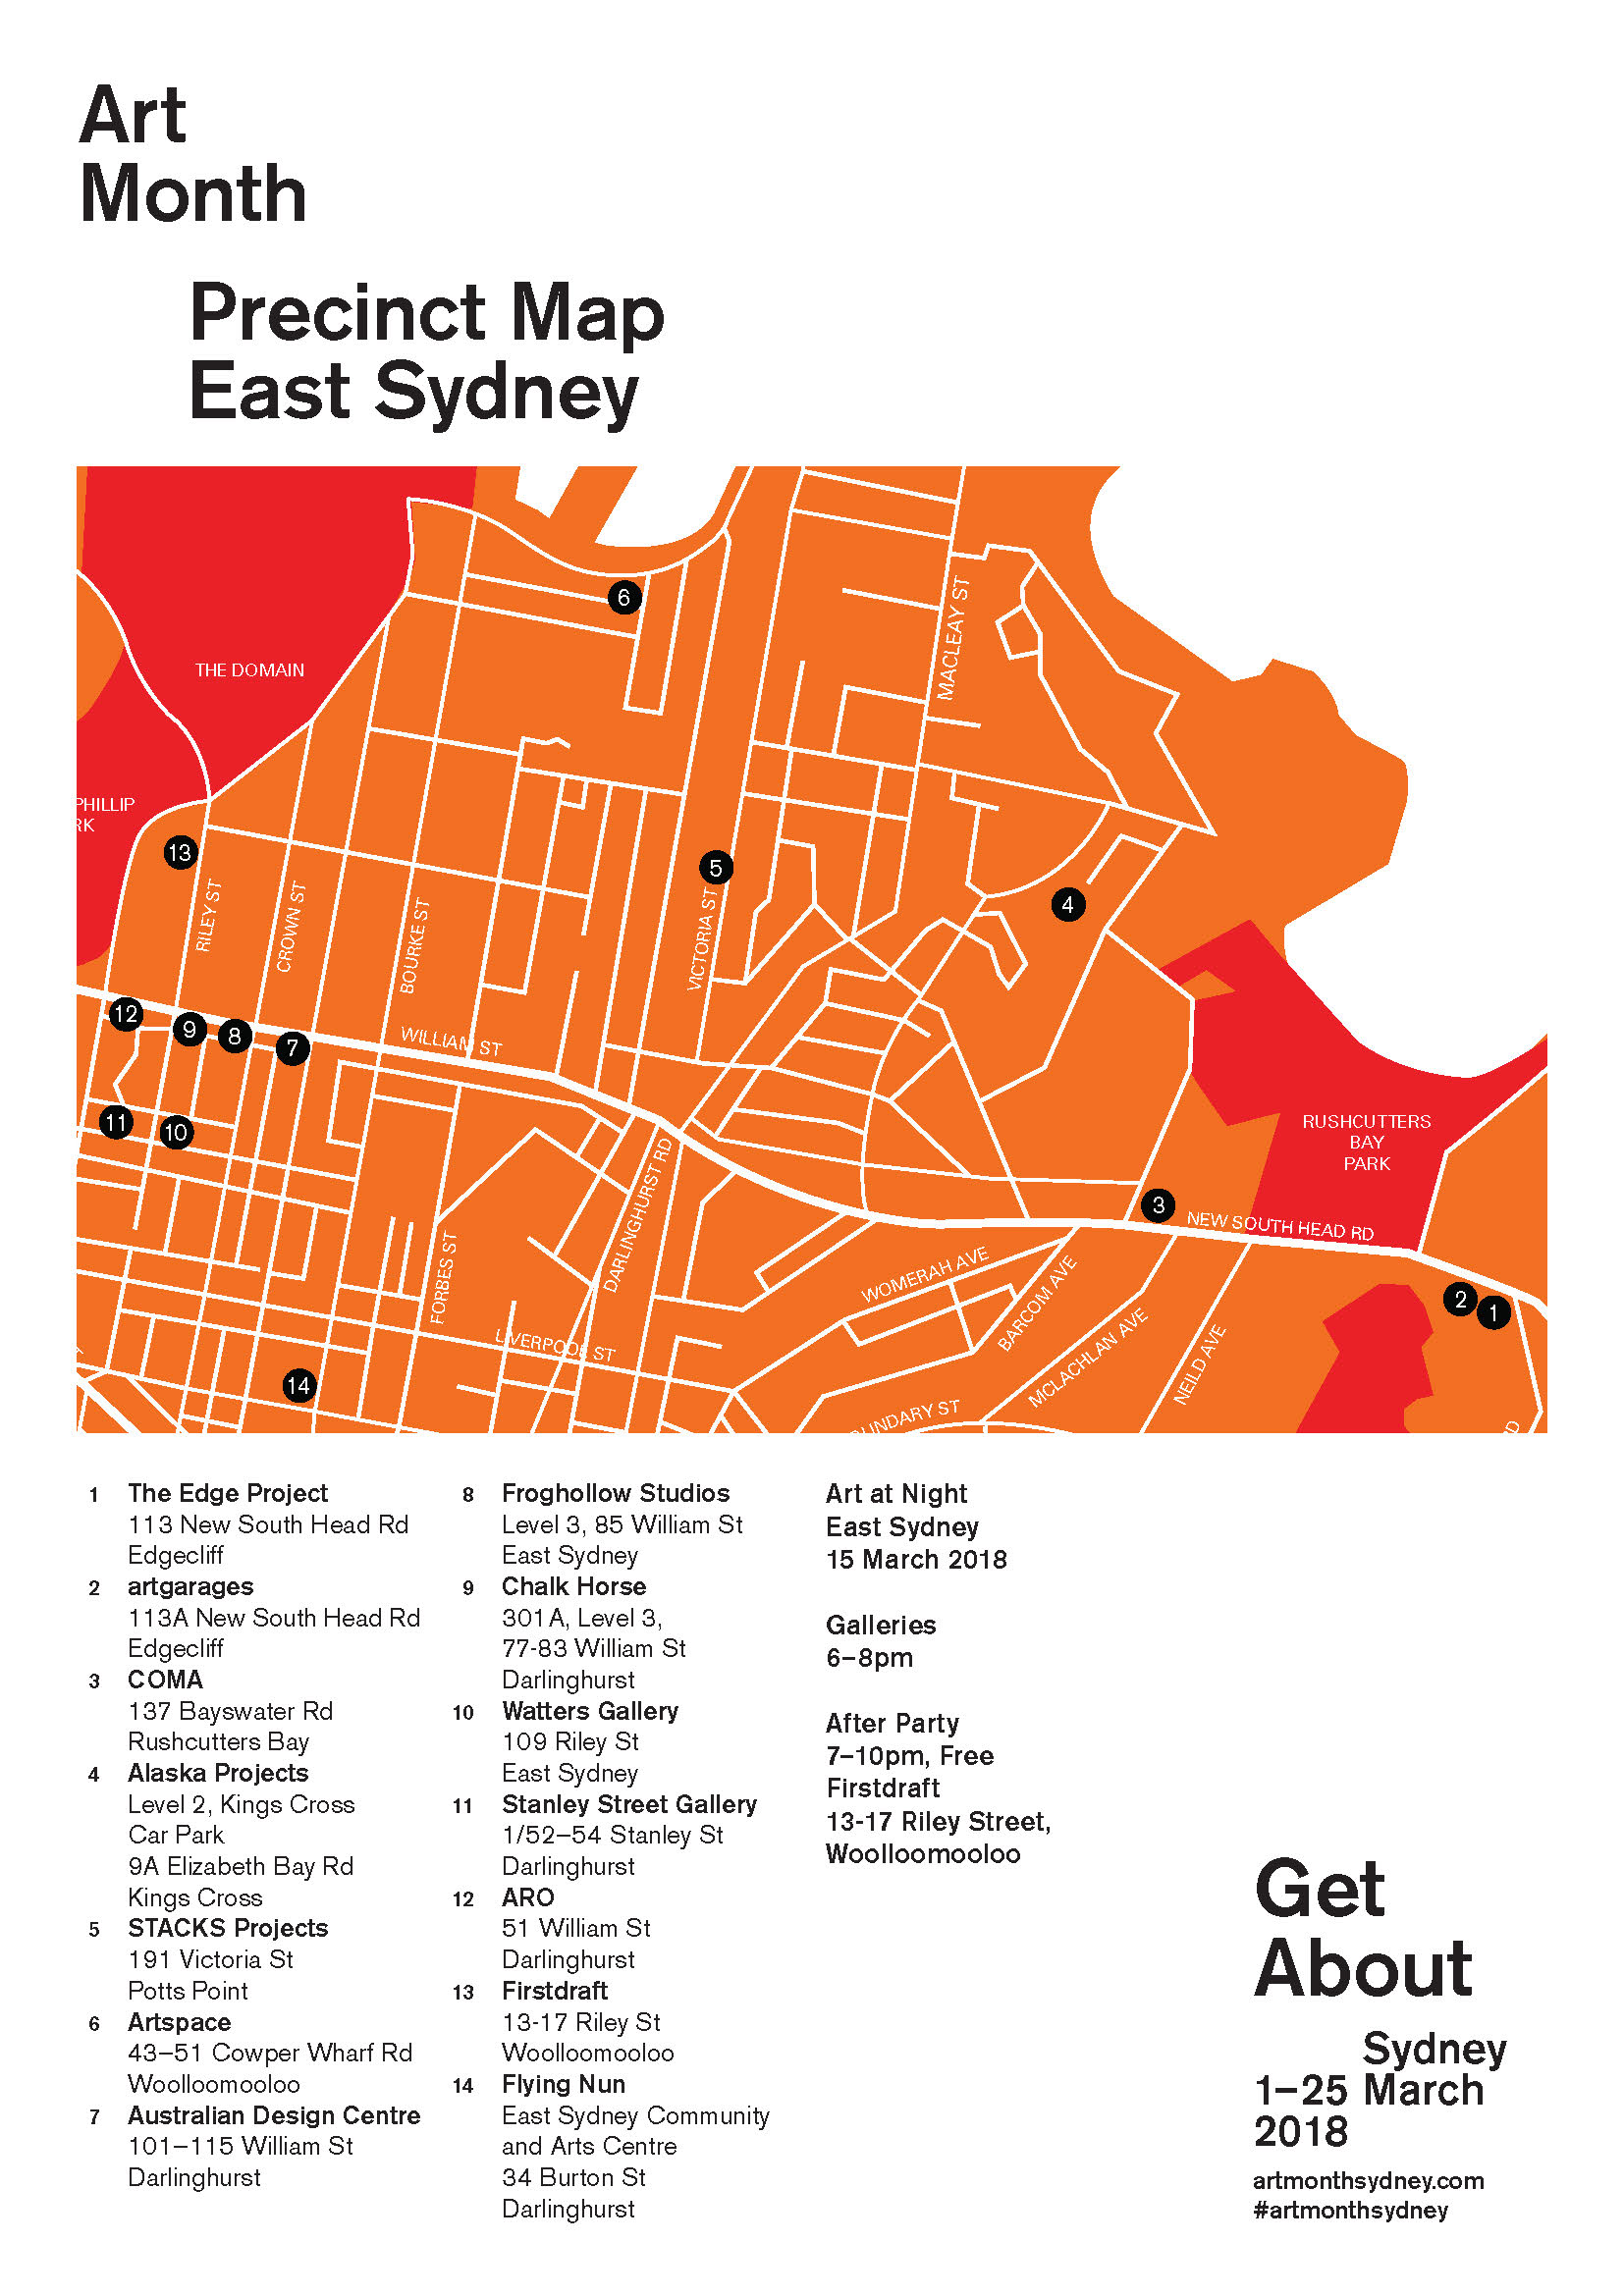 Art Month Sydney 2018 | East Sydney Precinct Night on syd ney botanical garden map, train line map, heritage harbor parking map, oakland map, sidney mt map, garden island nsw map, 1968 holiday inn kings cross sydney map, manly australia map, king s cross map, brisbane cbd map, sidney on a world map, australia attractions map,